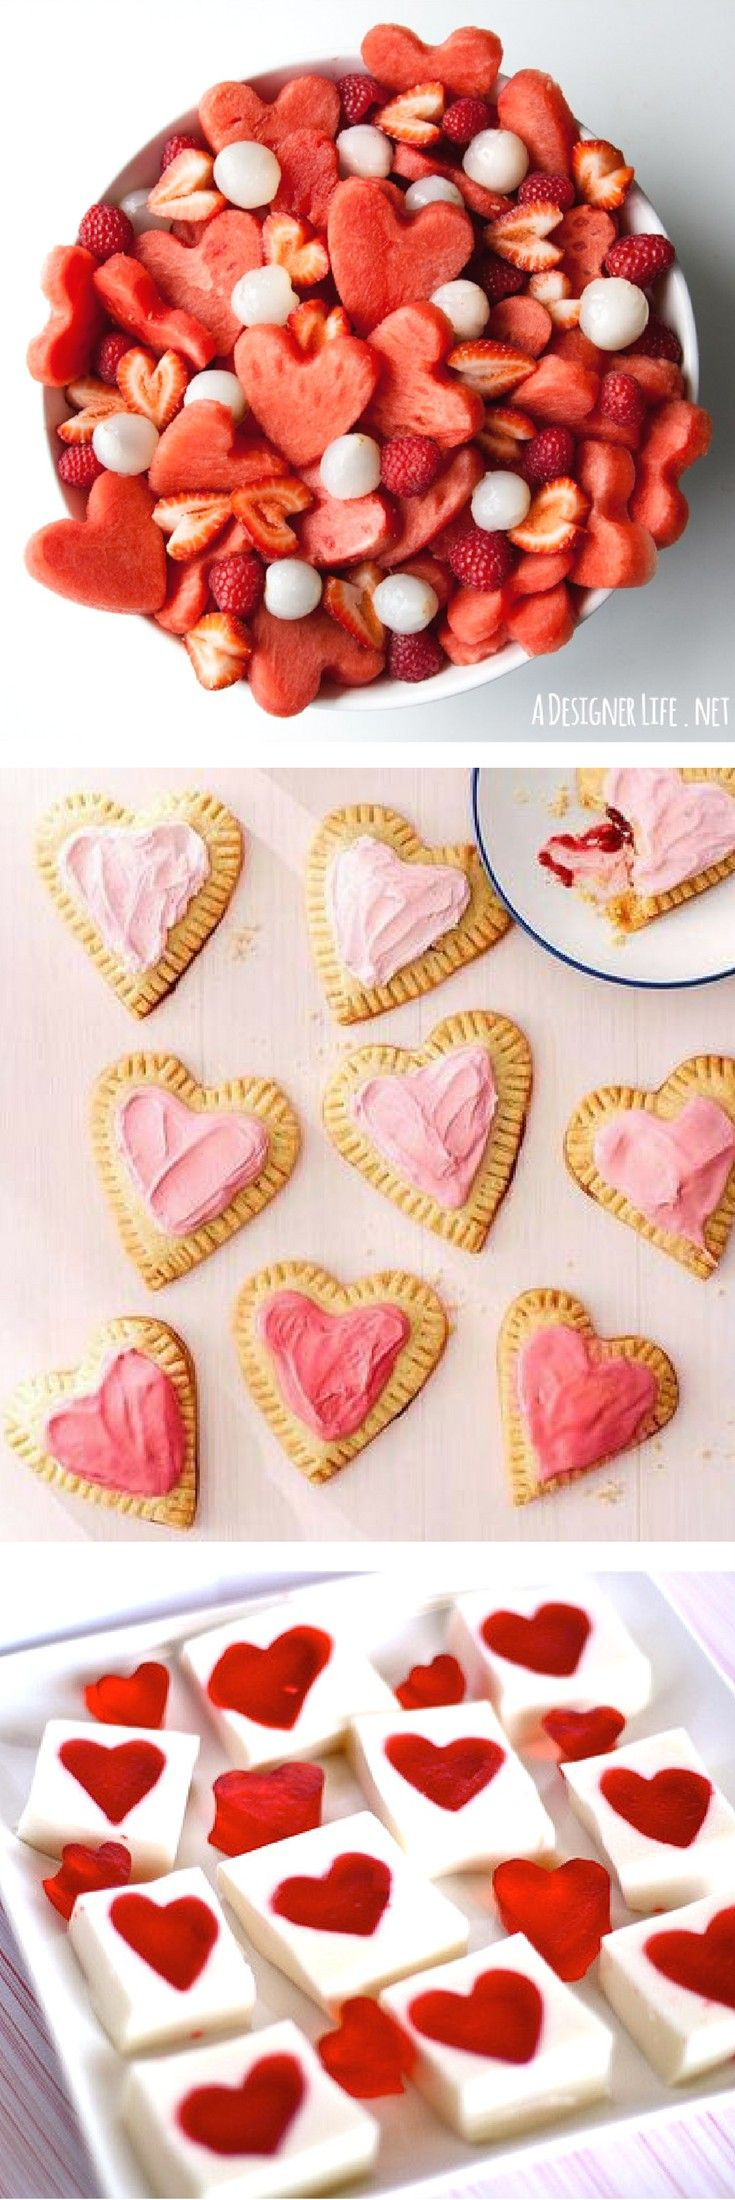 valentines day food ideas for a party - 735×2200